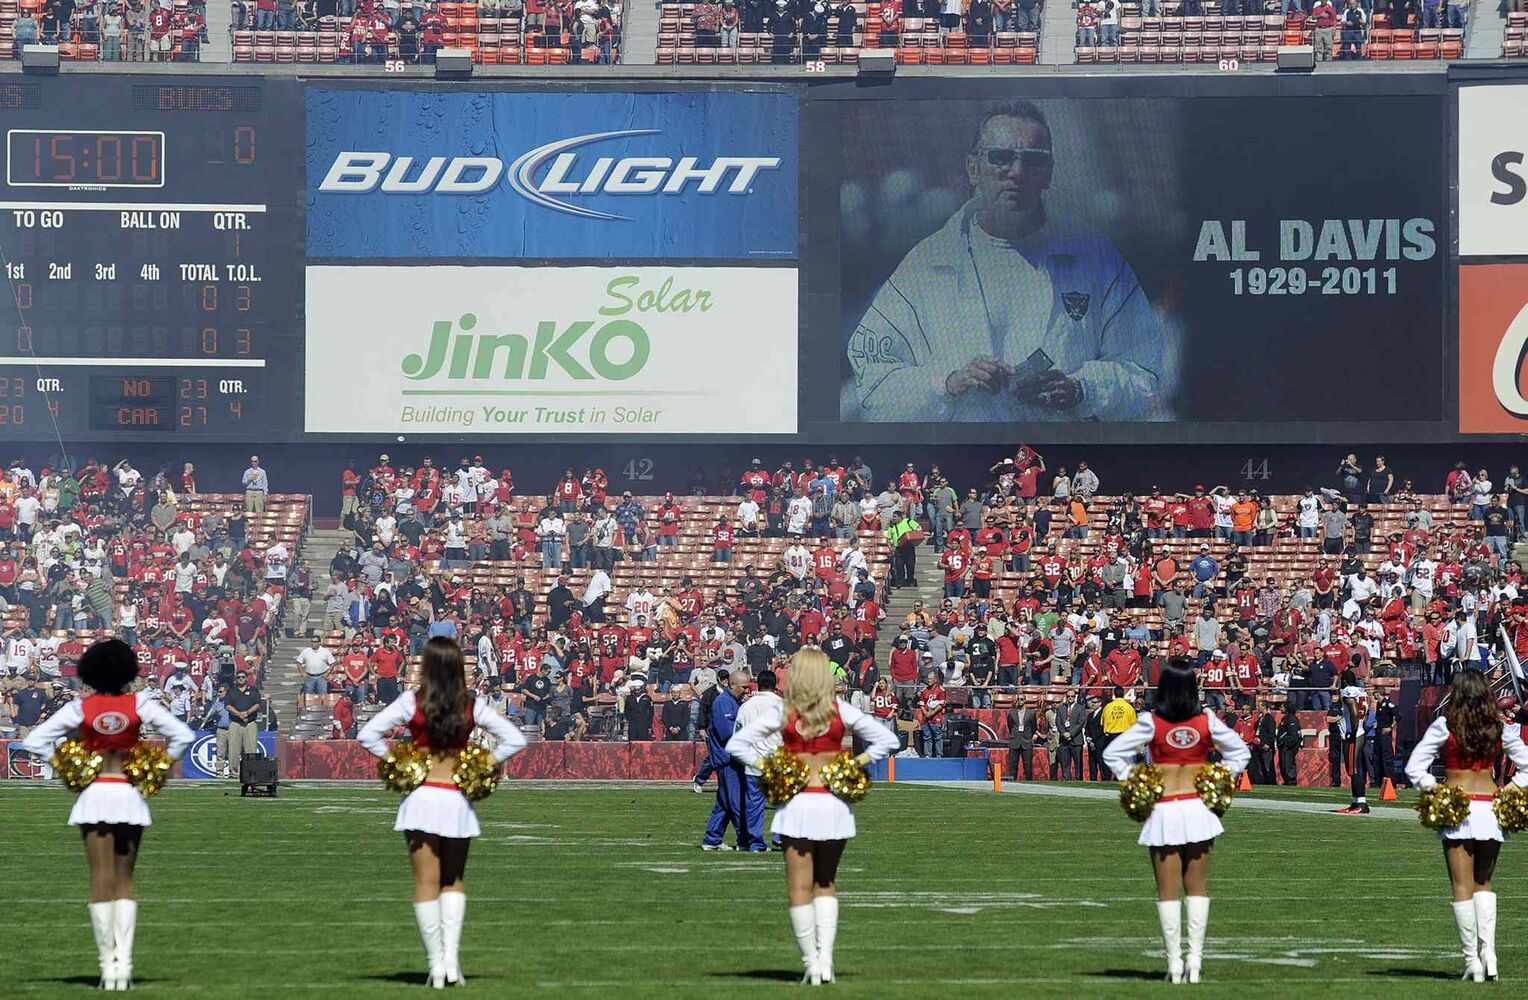 Fans observe a moment of silence for Oakland Raiders owner Al Davis, who passed away October 8, 2011, at a game the following day between the San Francisco 49ers and Tampa Bay Buccaneers.